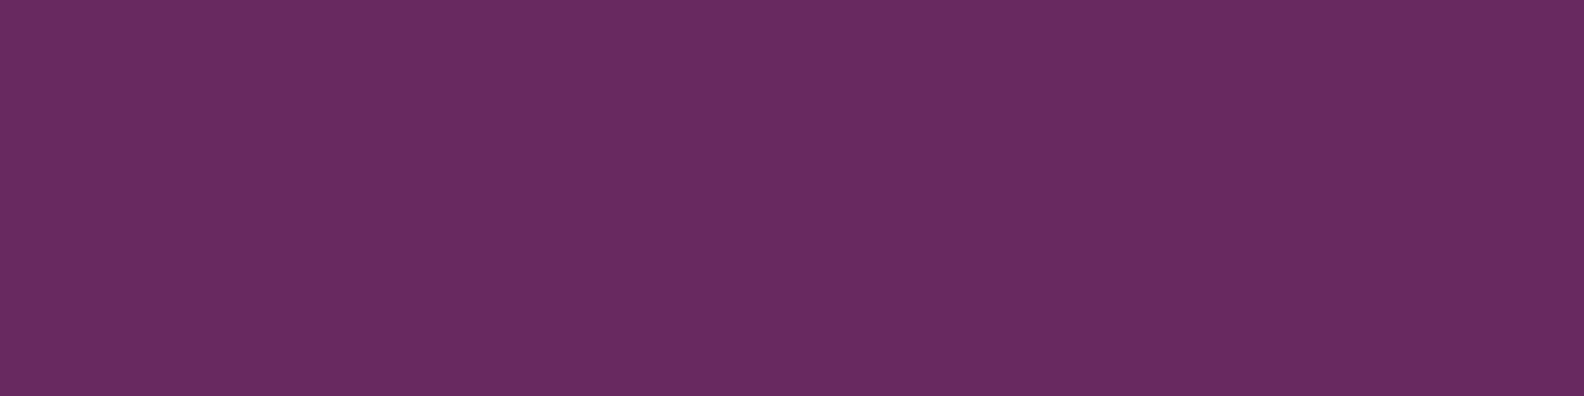 1584x396 Palatinate Purple Solid Color Background